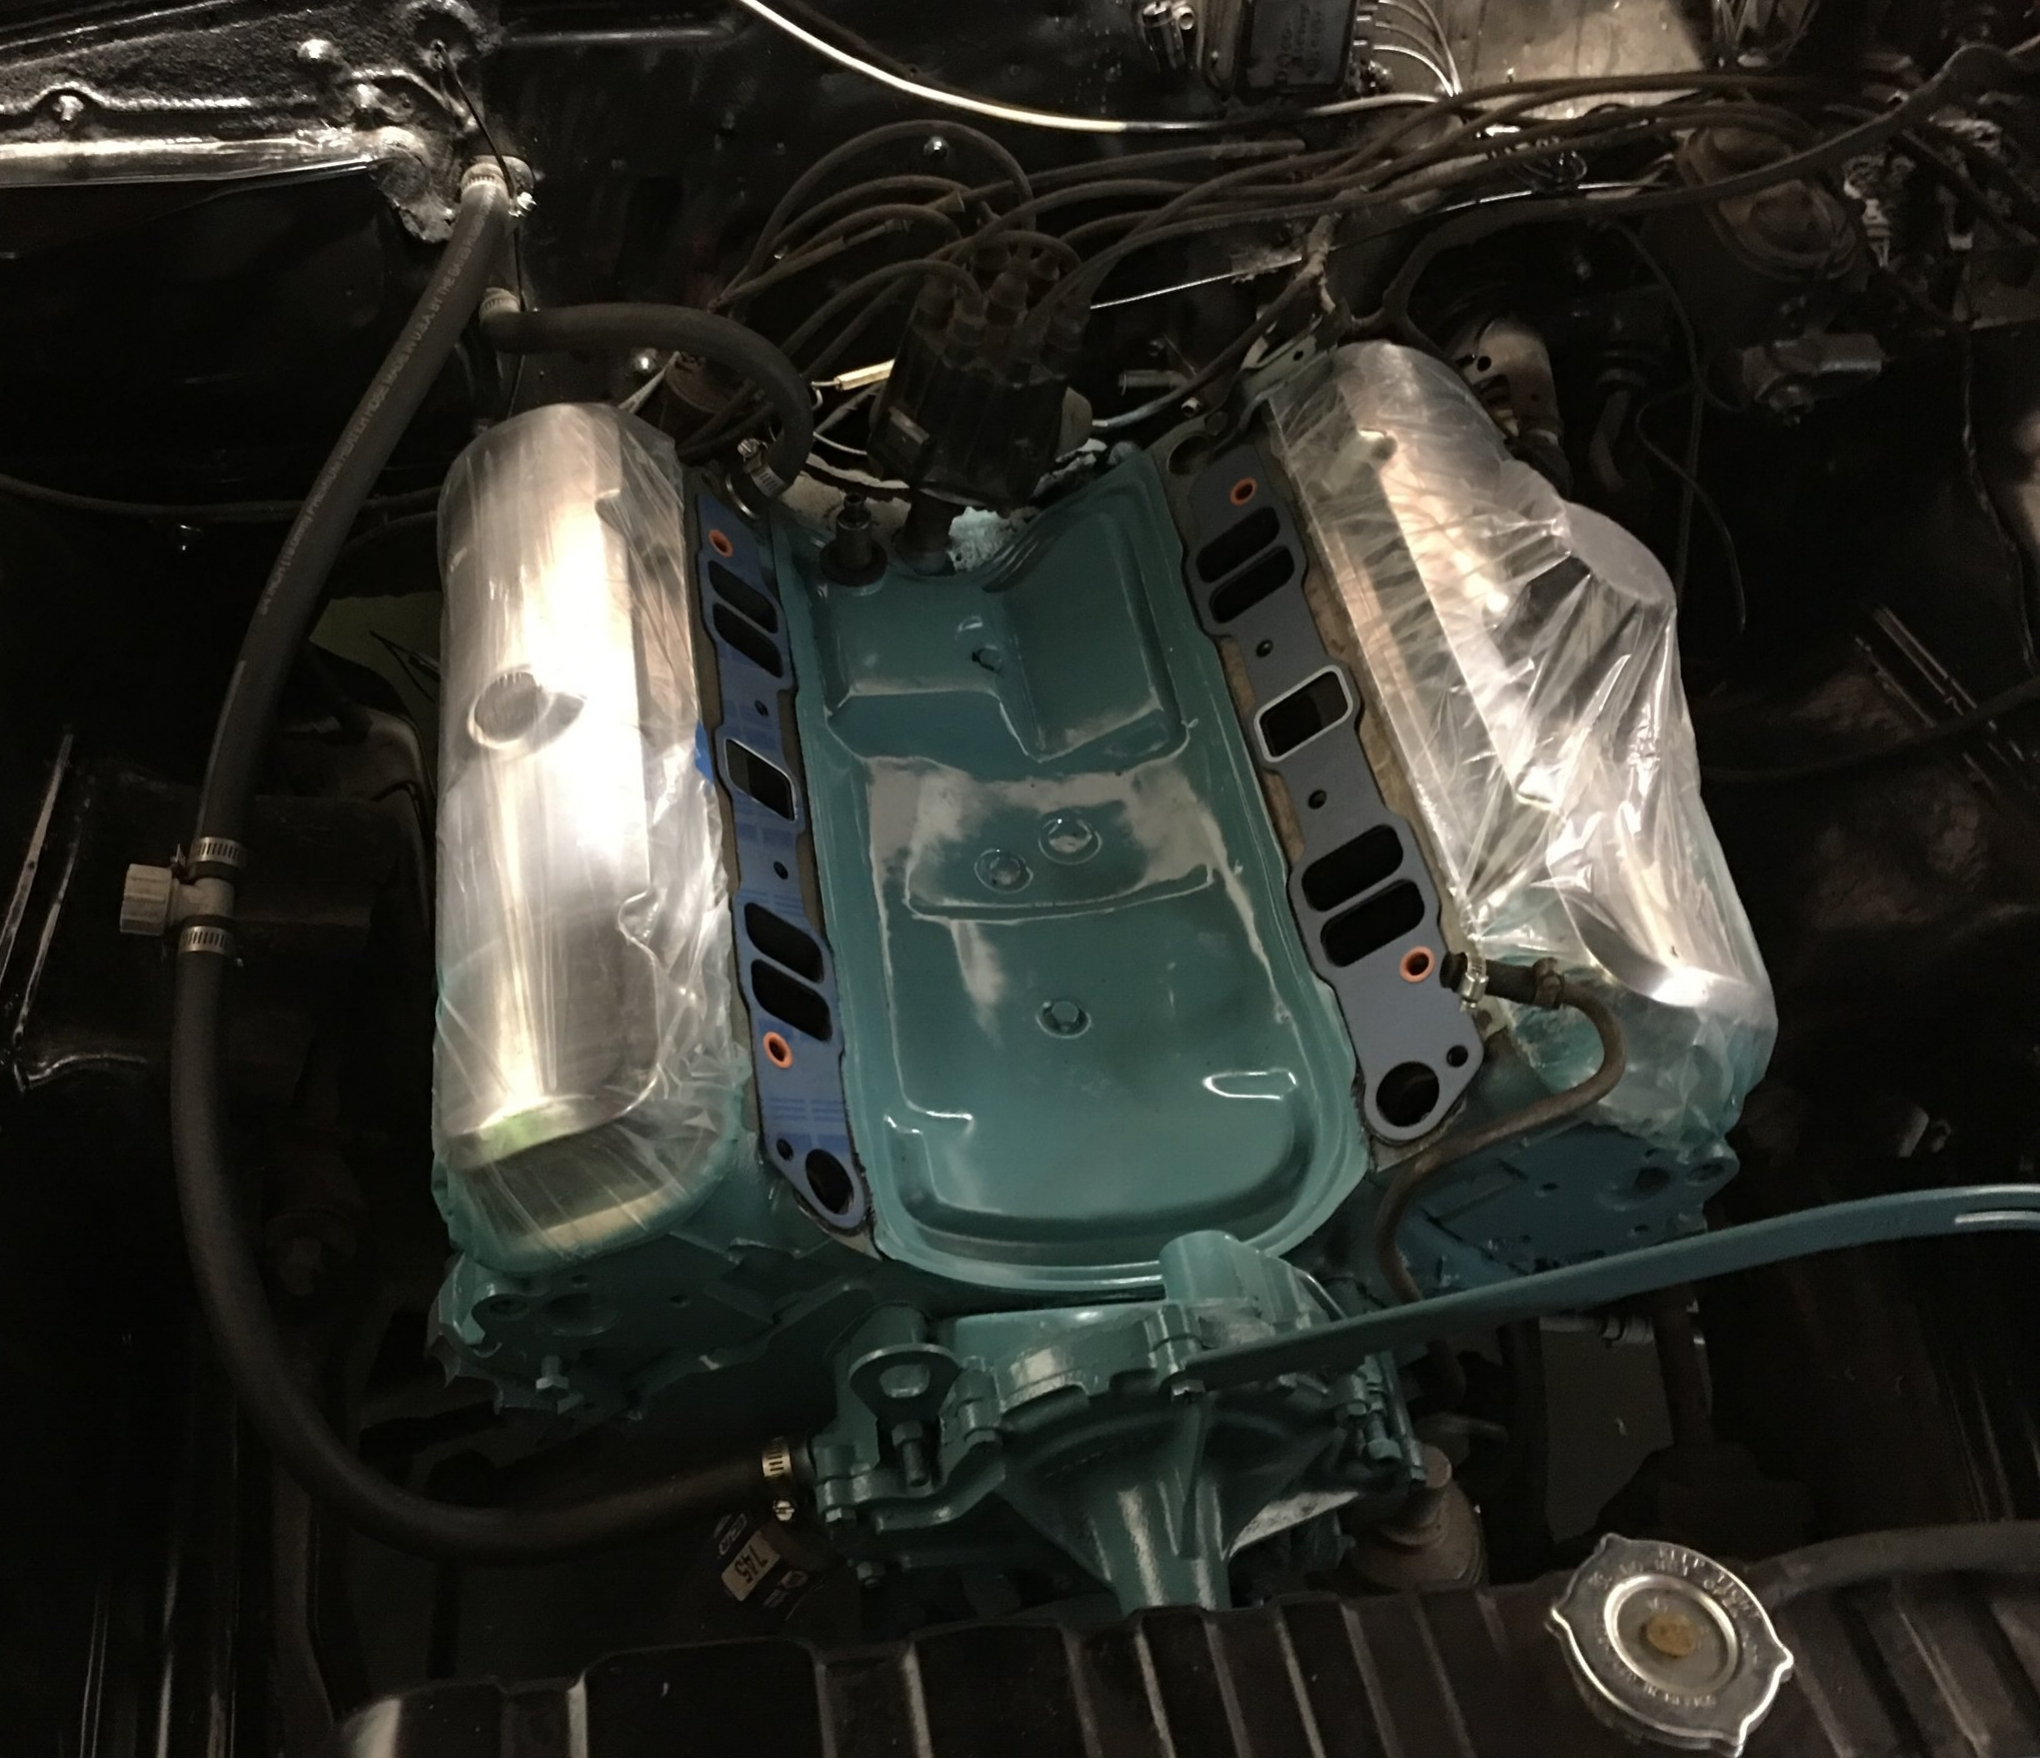 The factory 400 was given a minor restore - Everything really ran great on the car, we just freshened the paint, changed a few seals, rebuilt the factory carb. and installed a more modern and reliable ignition. Replacing the points ignition really makes the car fun to drive.